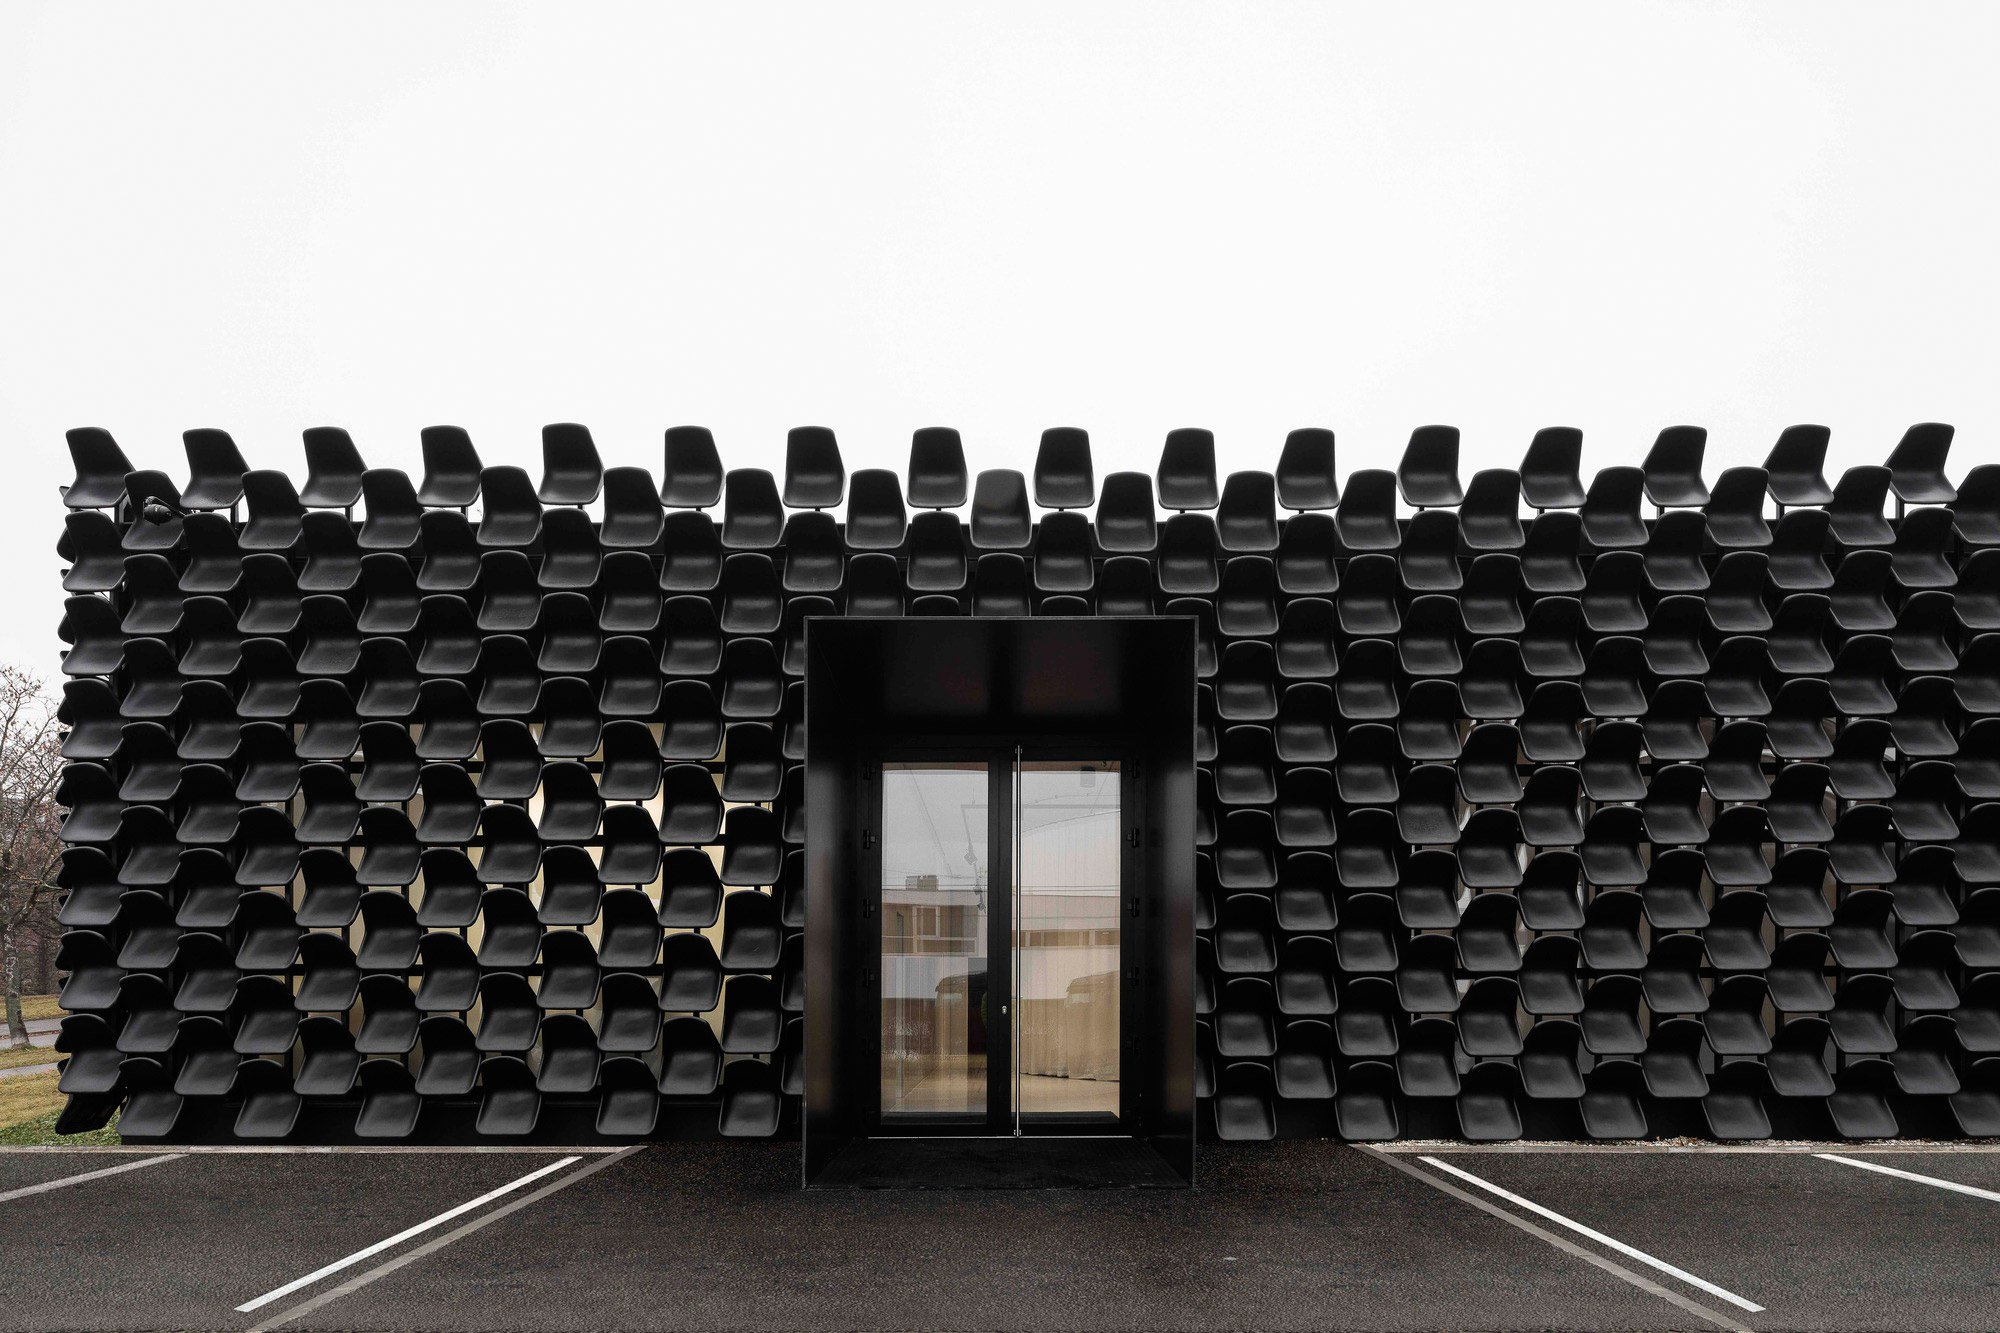 ignant-architecture-gallery-of-furniture-chybik-kristof-03